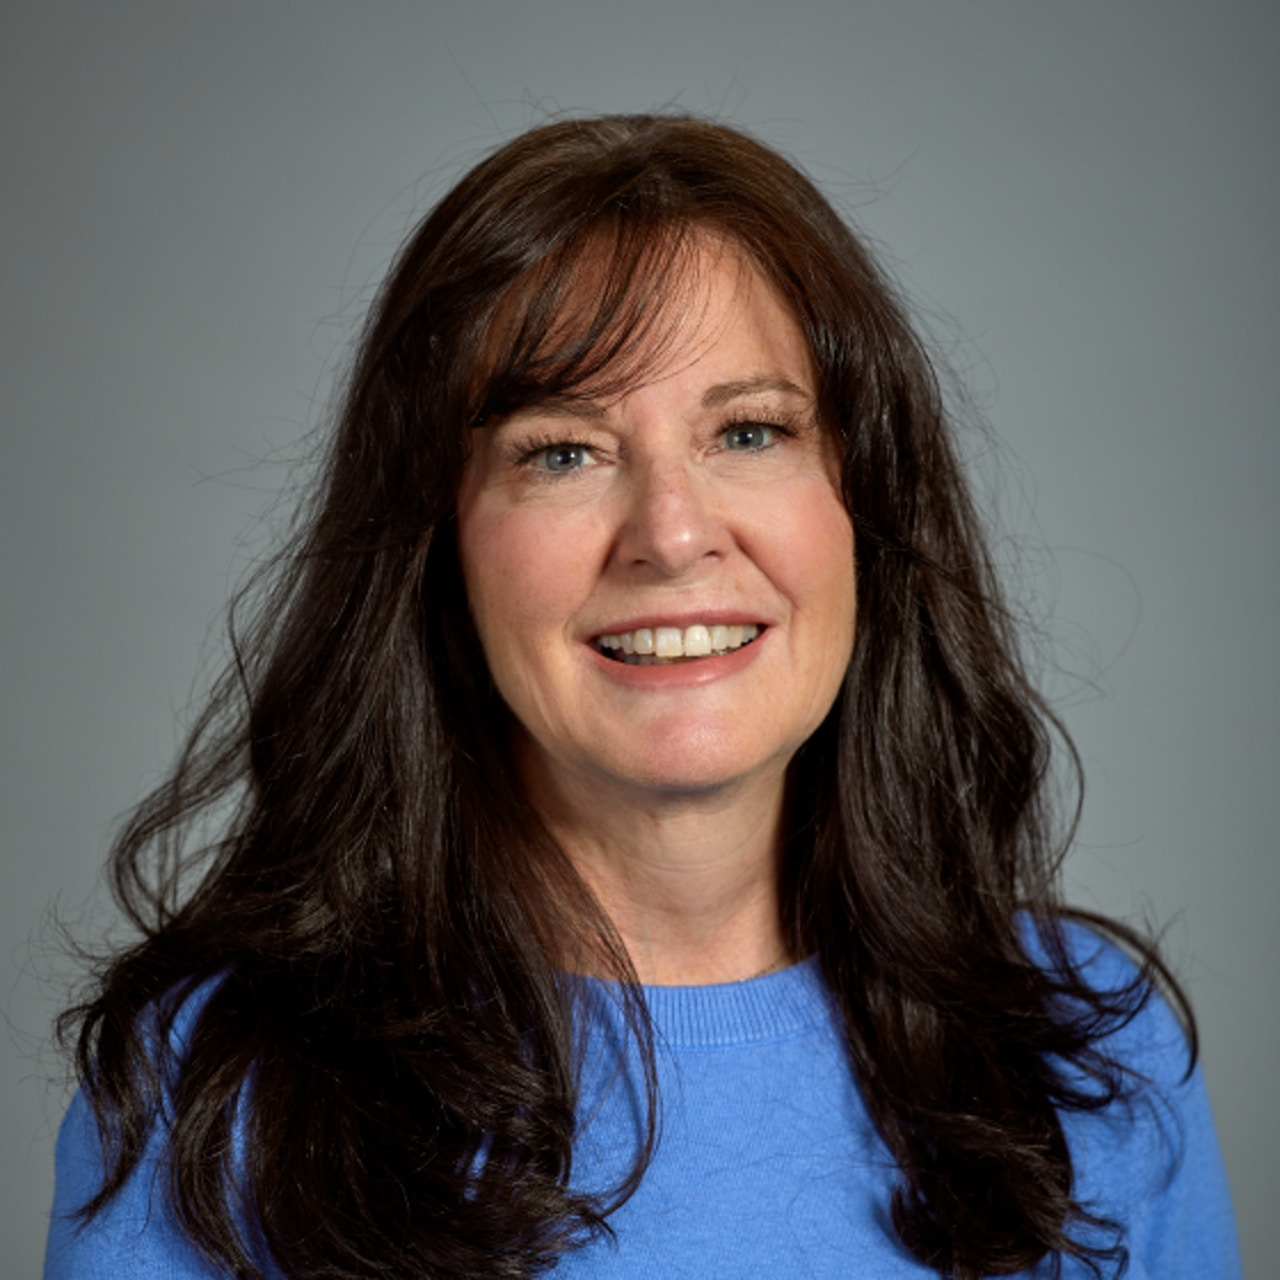 Shelley Garrity - Chief Human Resource Officer of MW Industries, Inc.